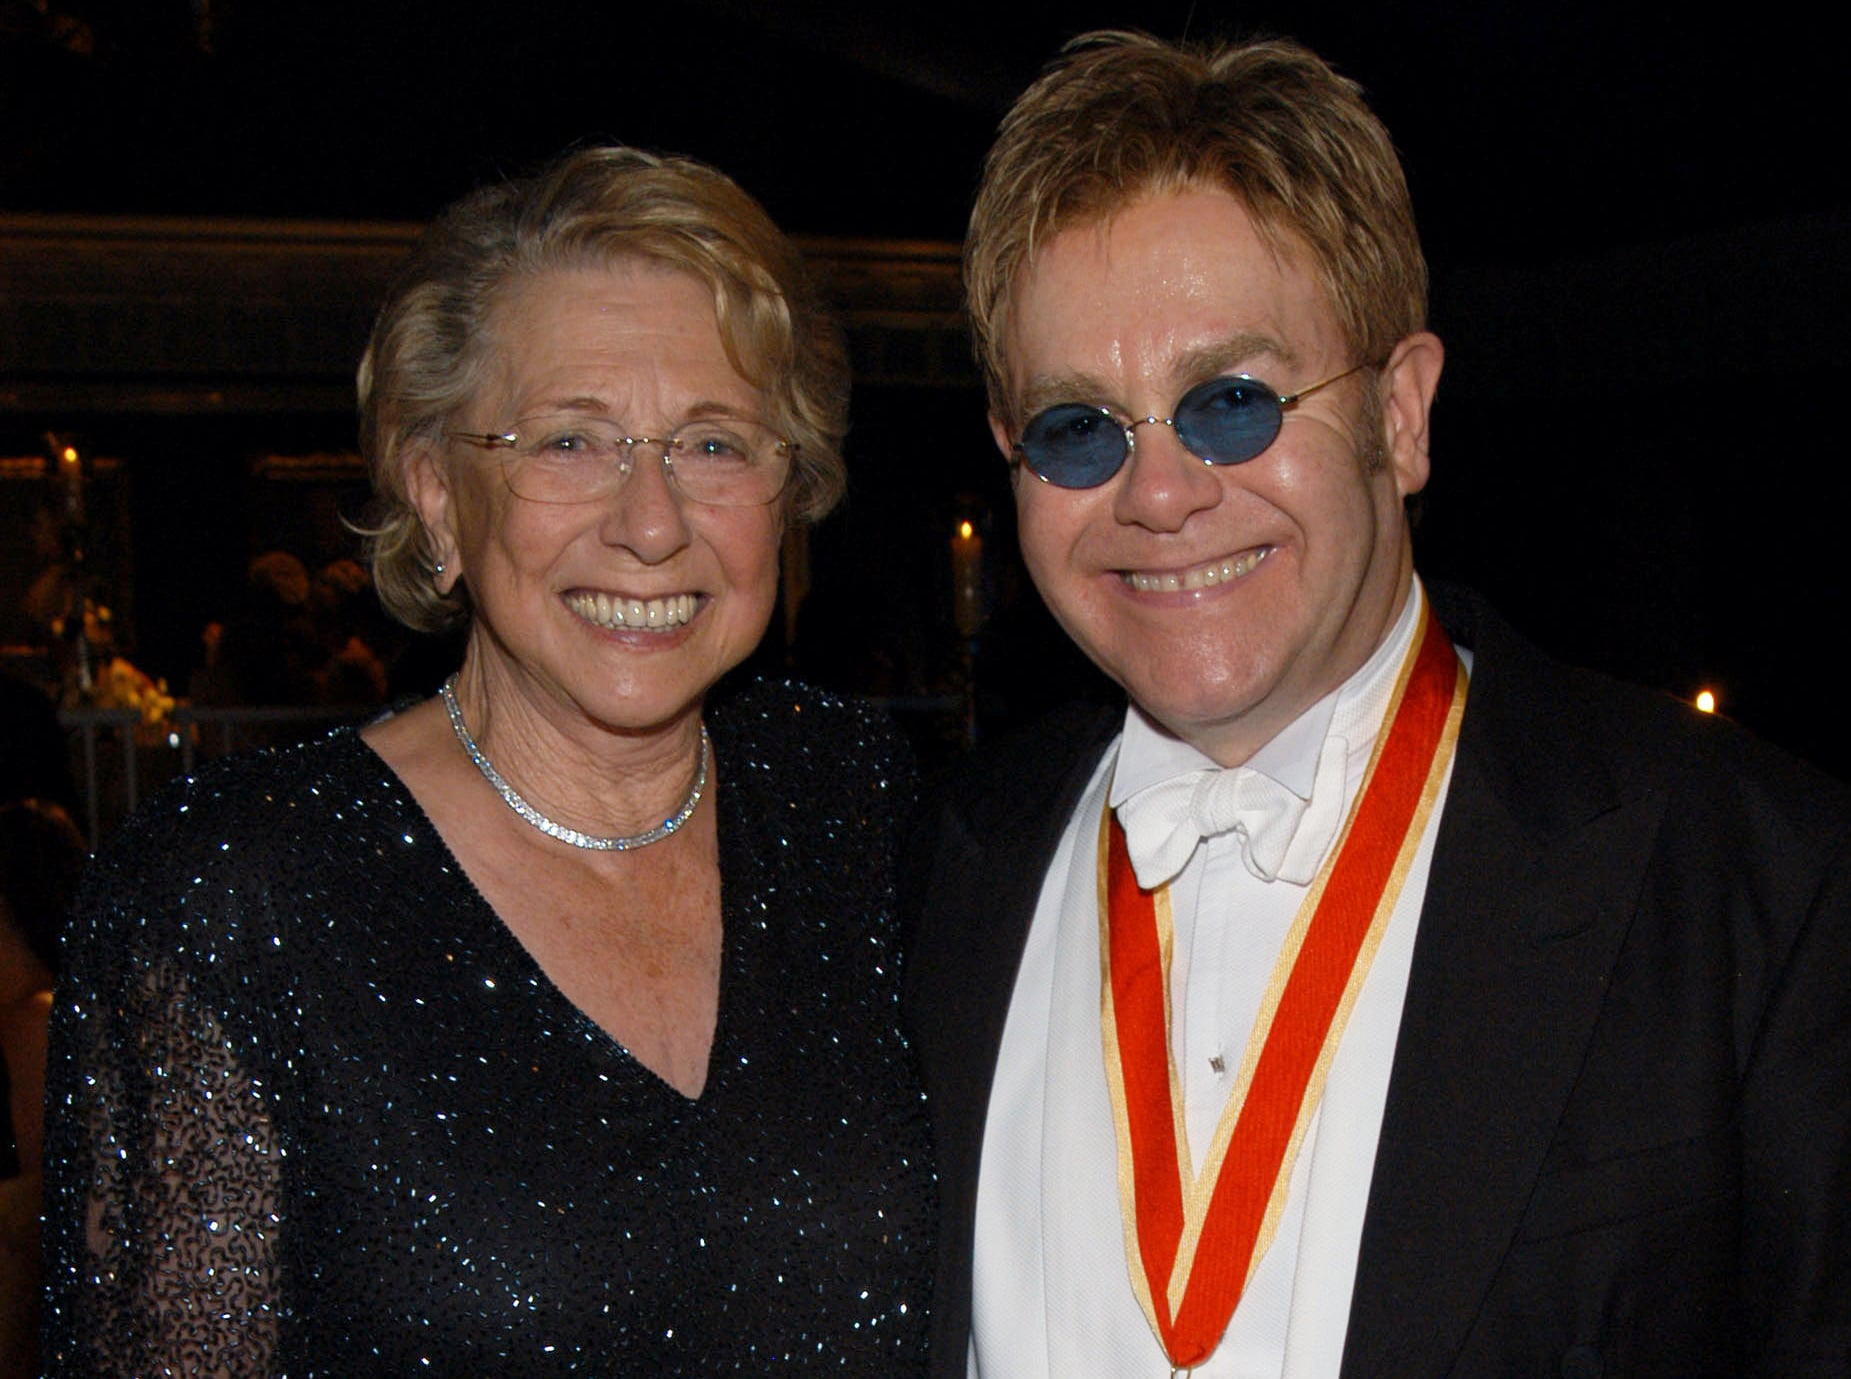 Elton John Reveals on Instagram His Mother Died